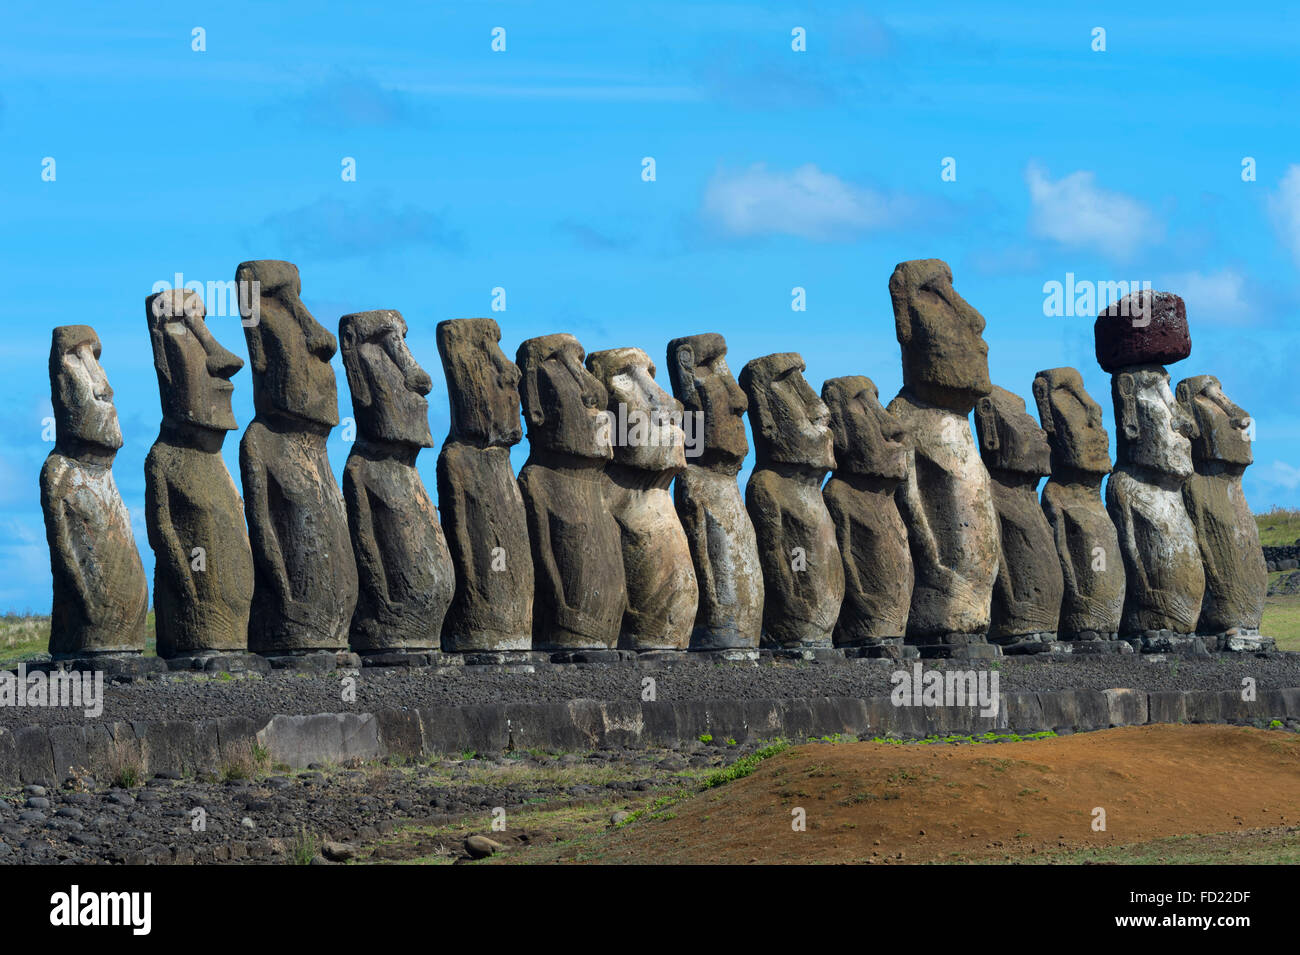 Moais am Ahu Tongariki, Nationalpark Rapa Nui, Osterinsel, Chile, UNESCO-Welterbe Stockbild